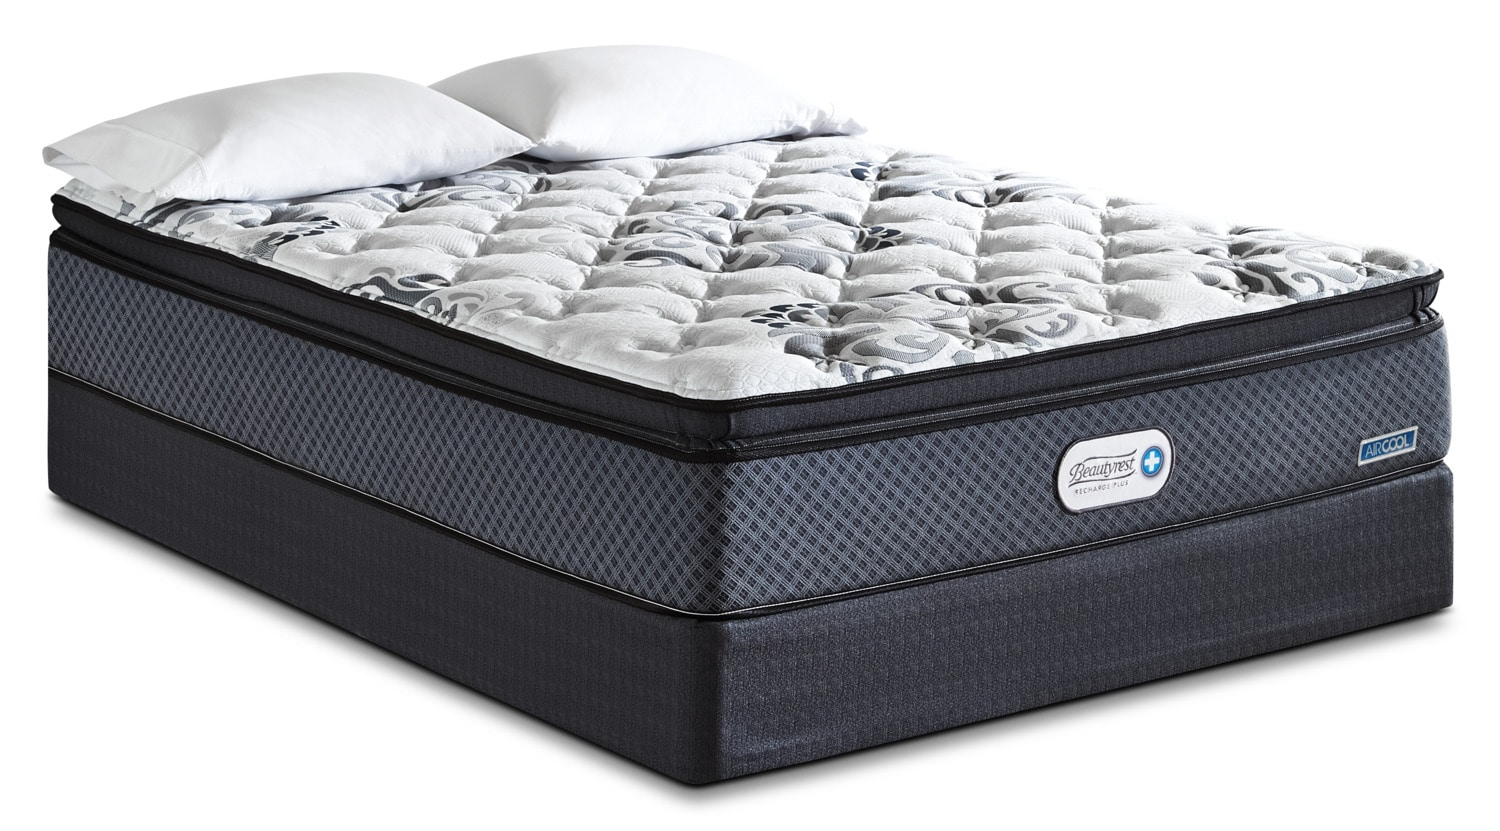 Mattresses and Bedding - Beautyrest Recharge Inspire Hi-Loft Pillow-Top Firm Low-Profile Split Queen Mattress Set